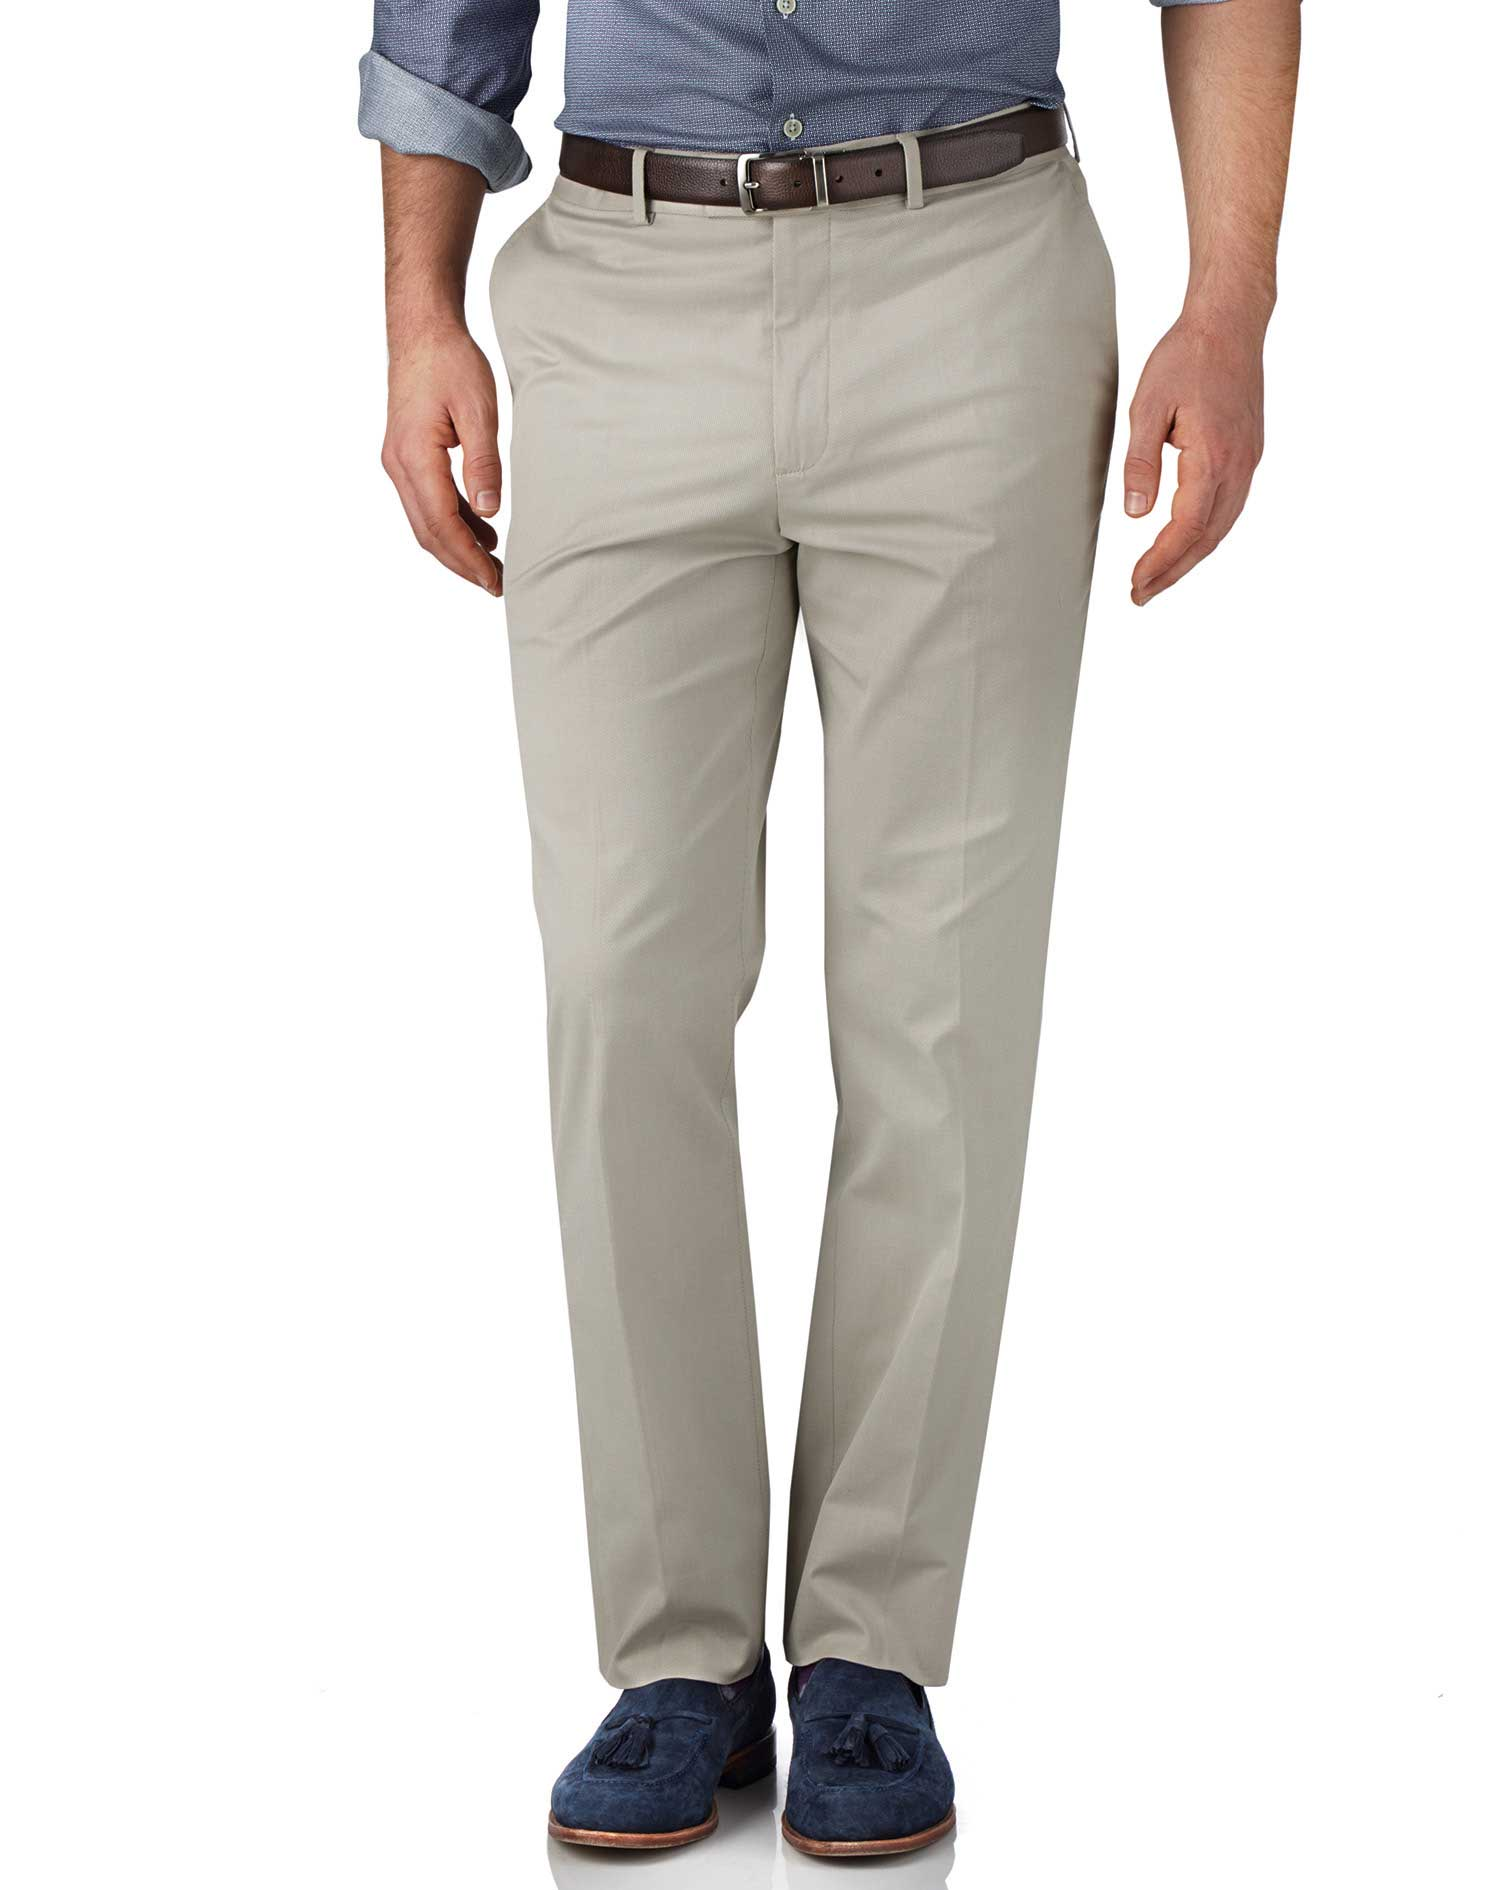 Stone Classic Fit Stretch Cavalry Twill Trousers Size W32 L30 by Charles Tyrwhitt